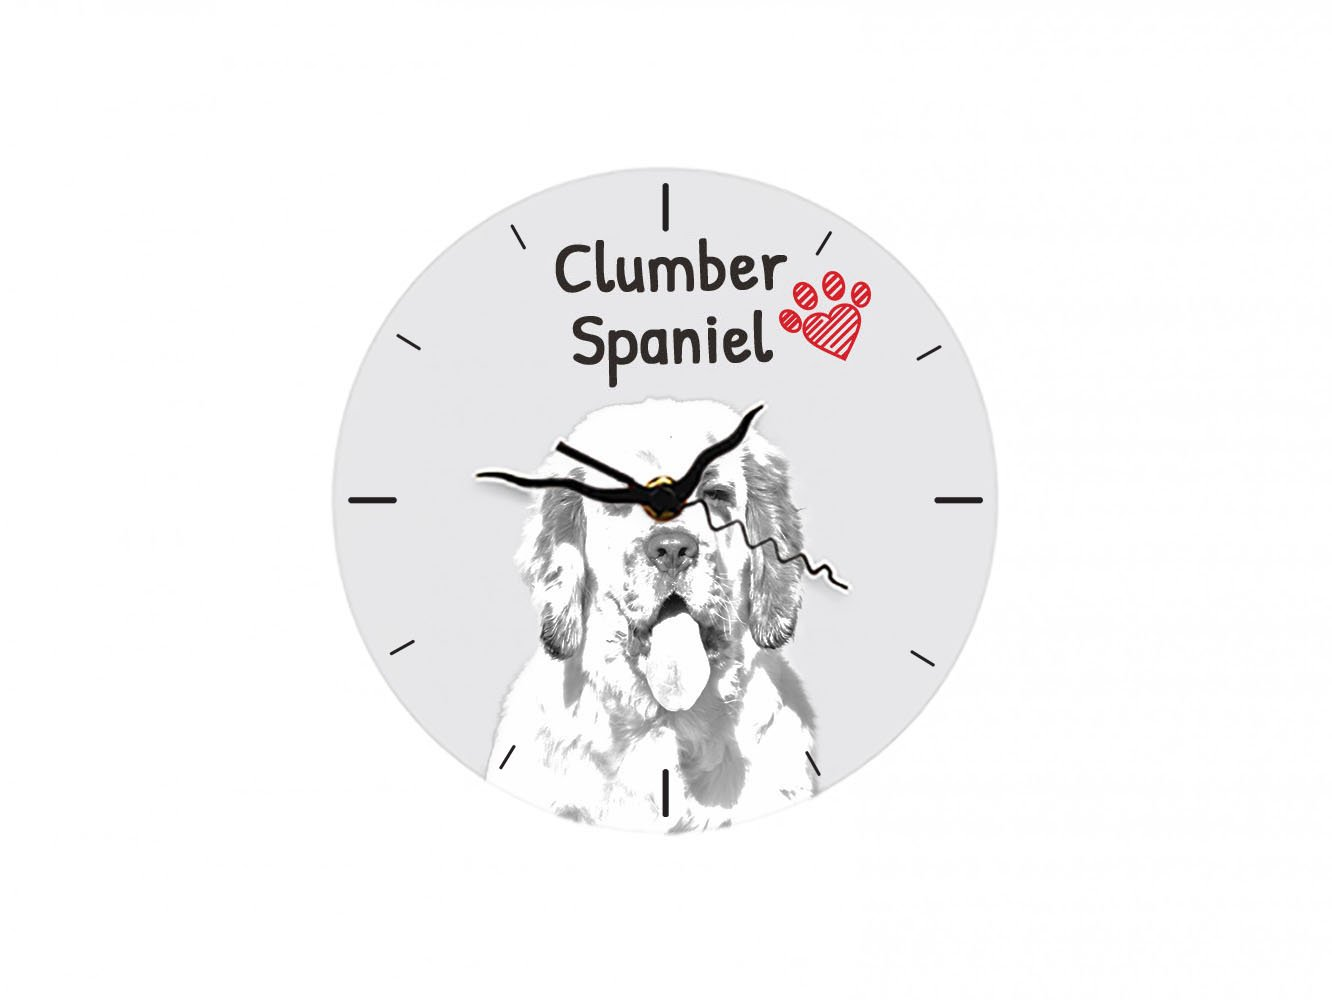 Clumber Spaniel, freestanding MDF Floor Clock with an Image of a Dog 1